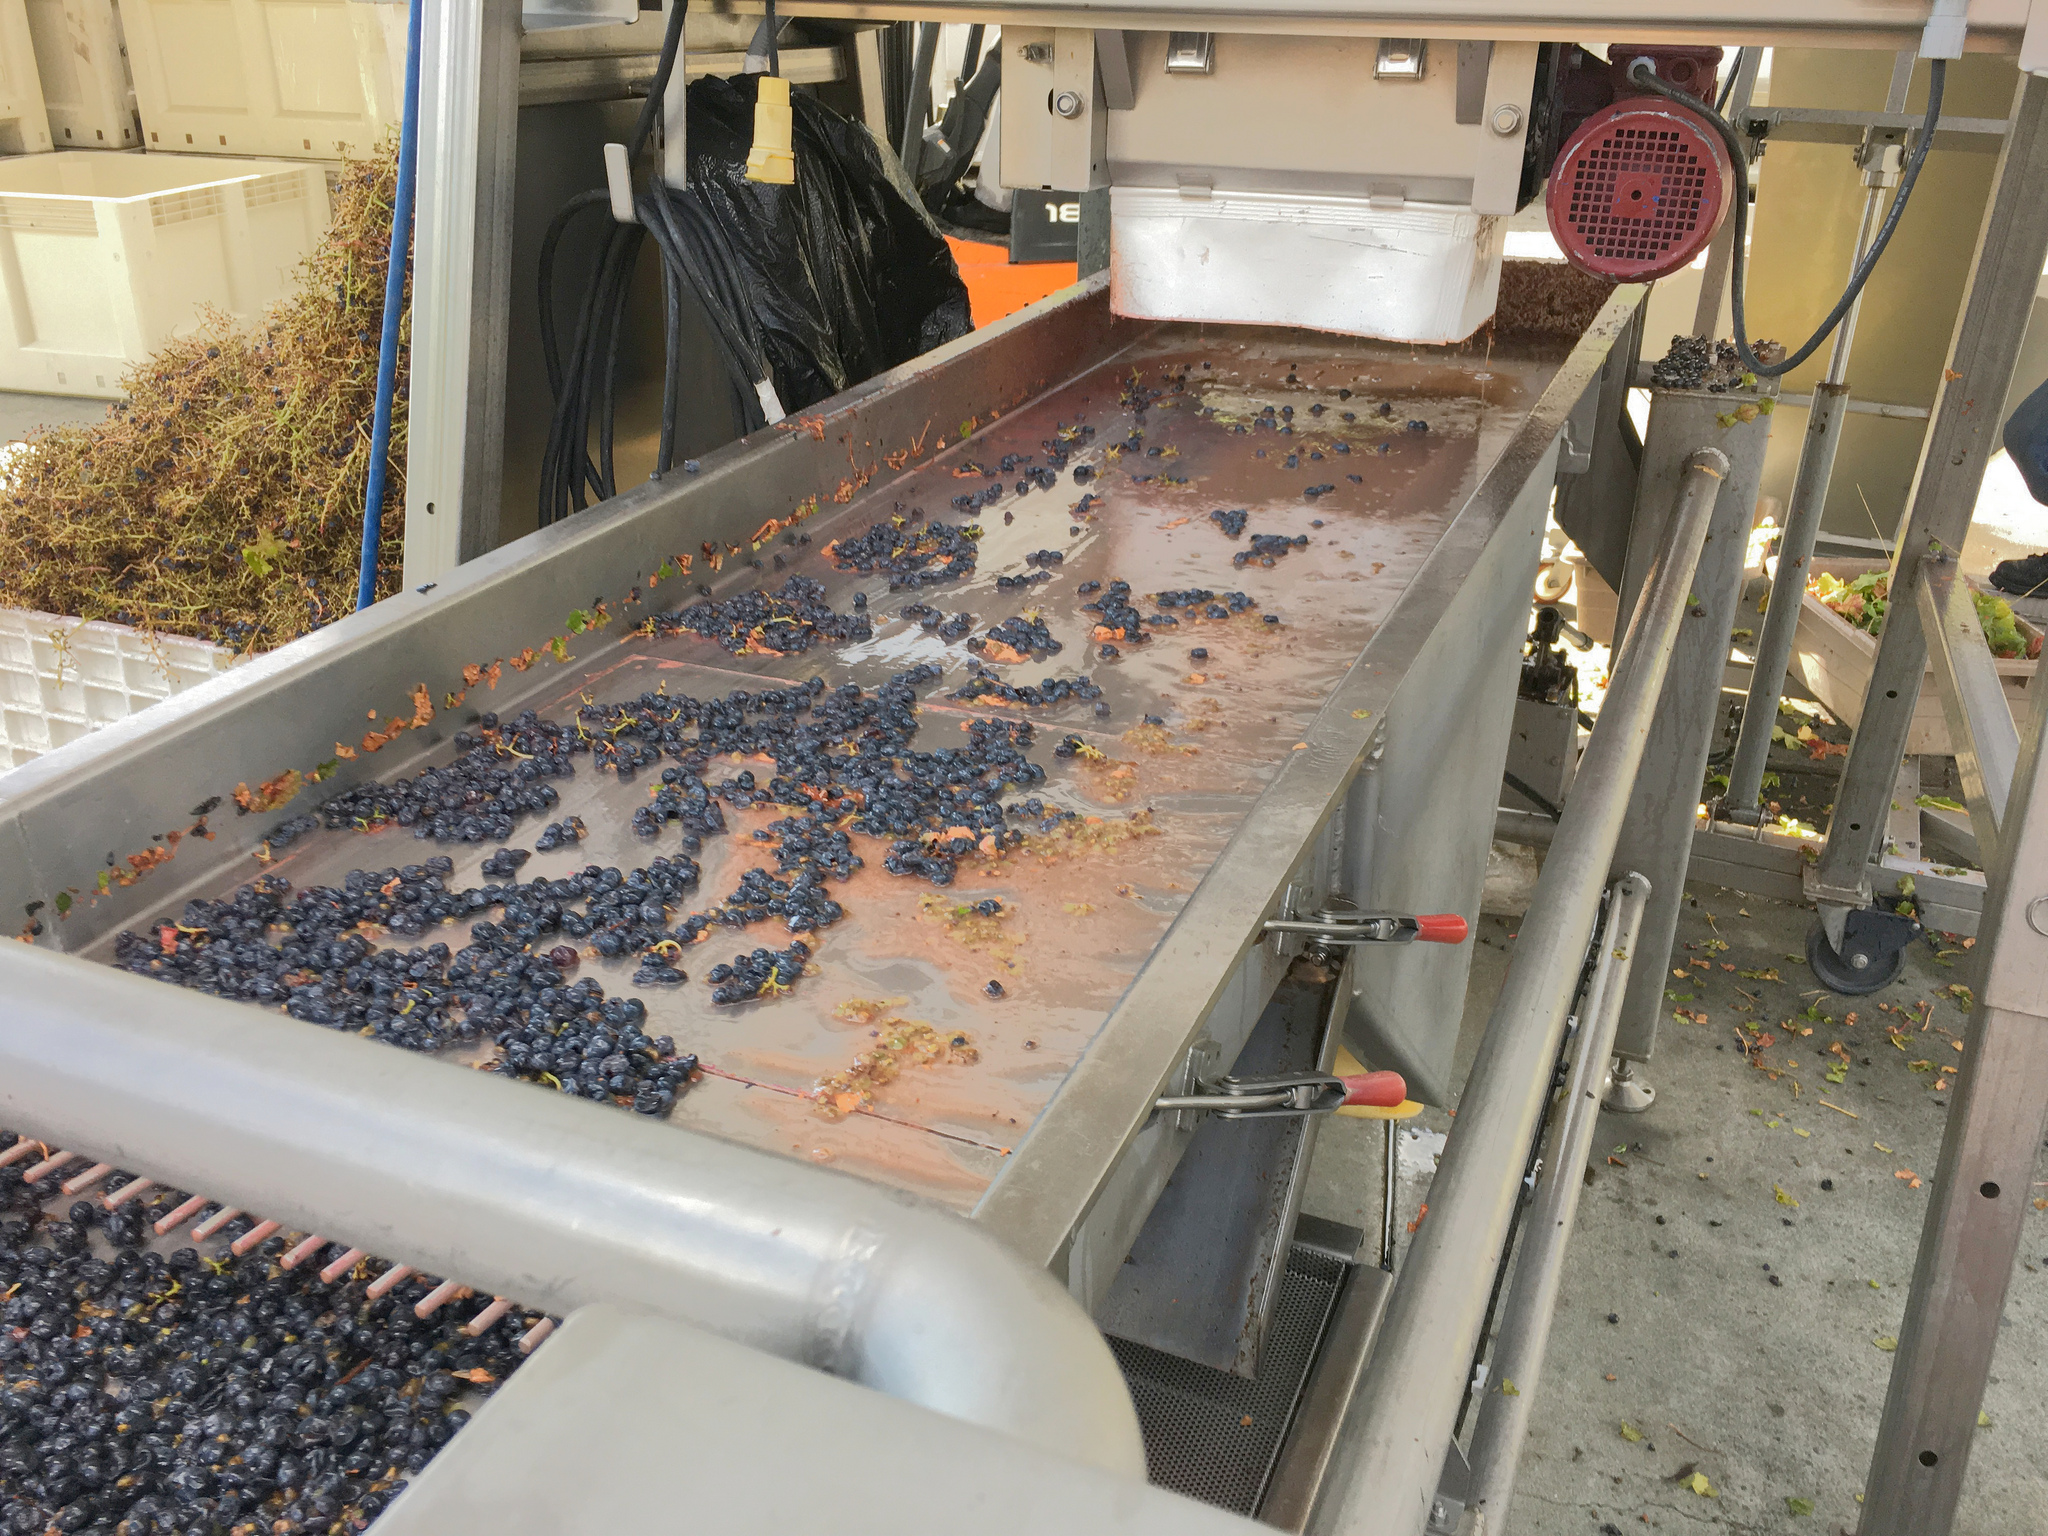 The shaker table is a tool for sorting grapes. Look at all the debris around the table.